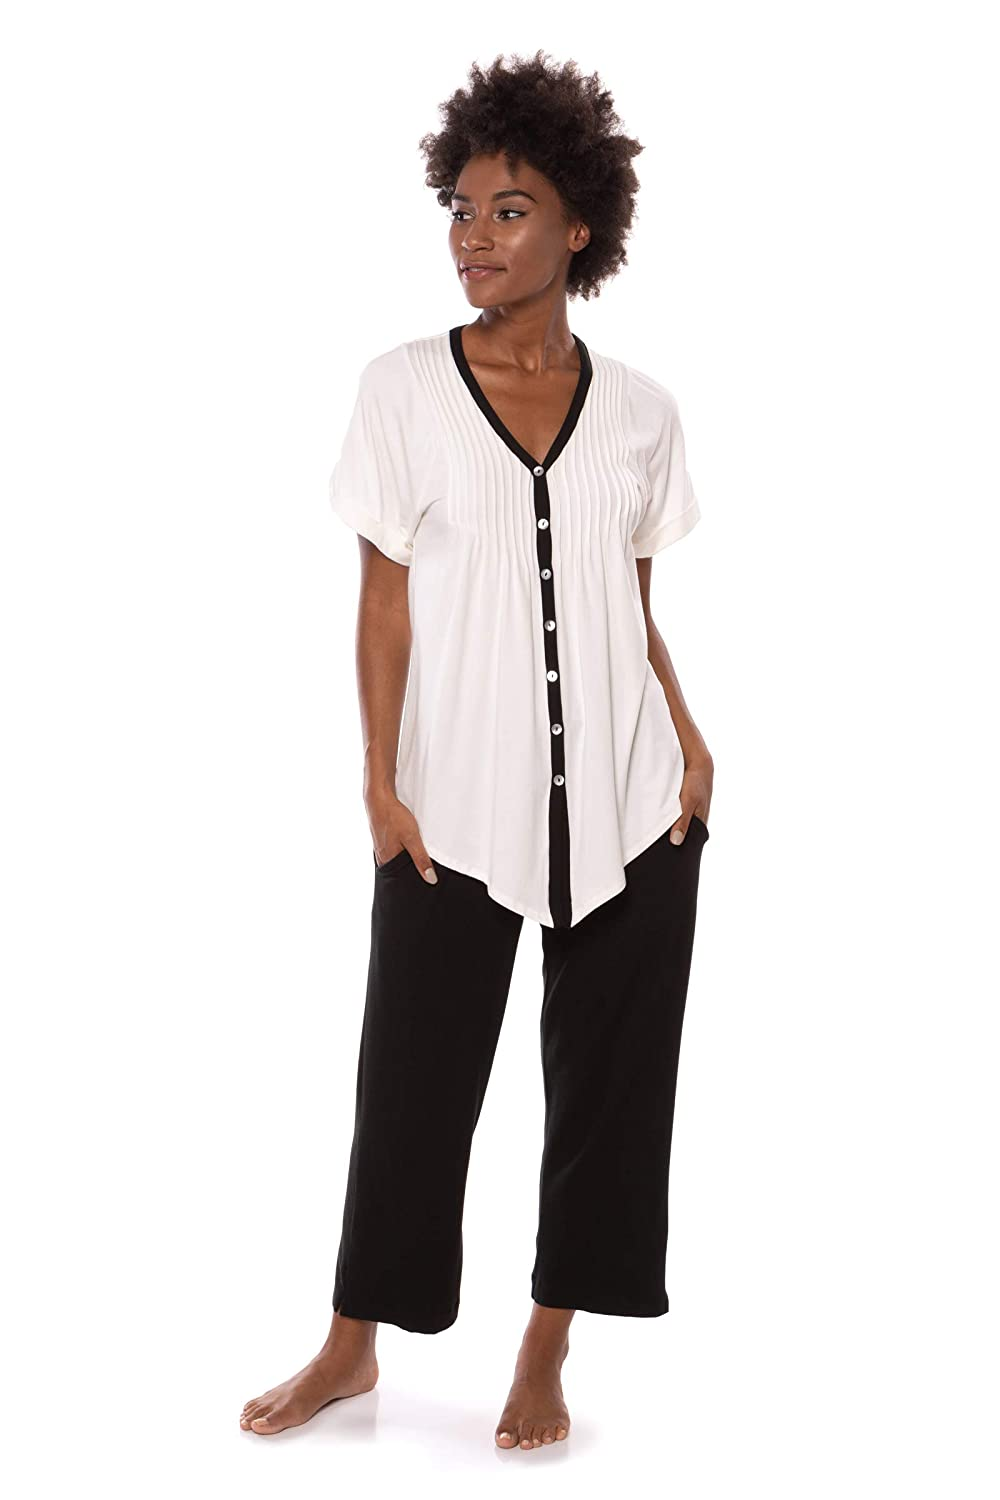 Black Women's Short Sleeve PJ Set  PJs in Bamboo Viscose by Texere (Sweet Paradise)